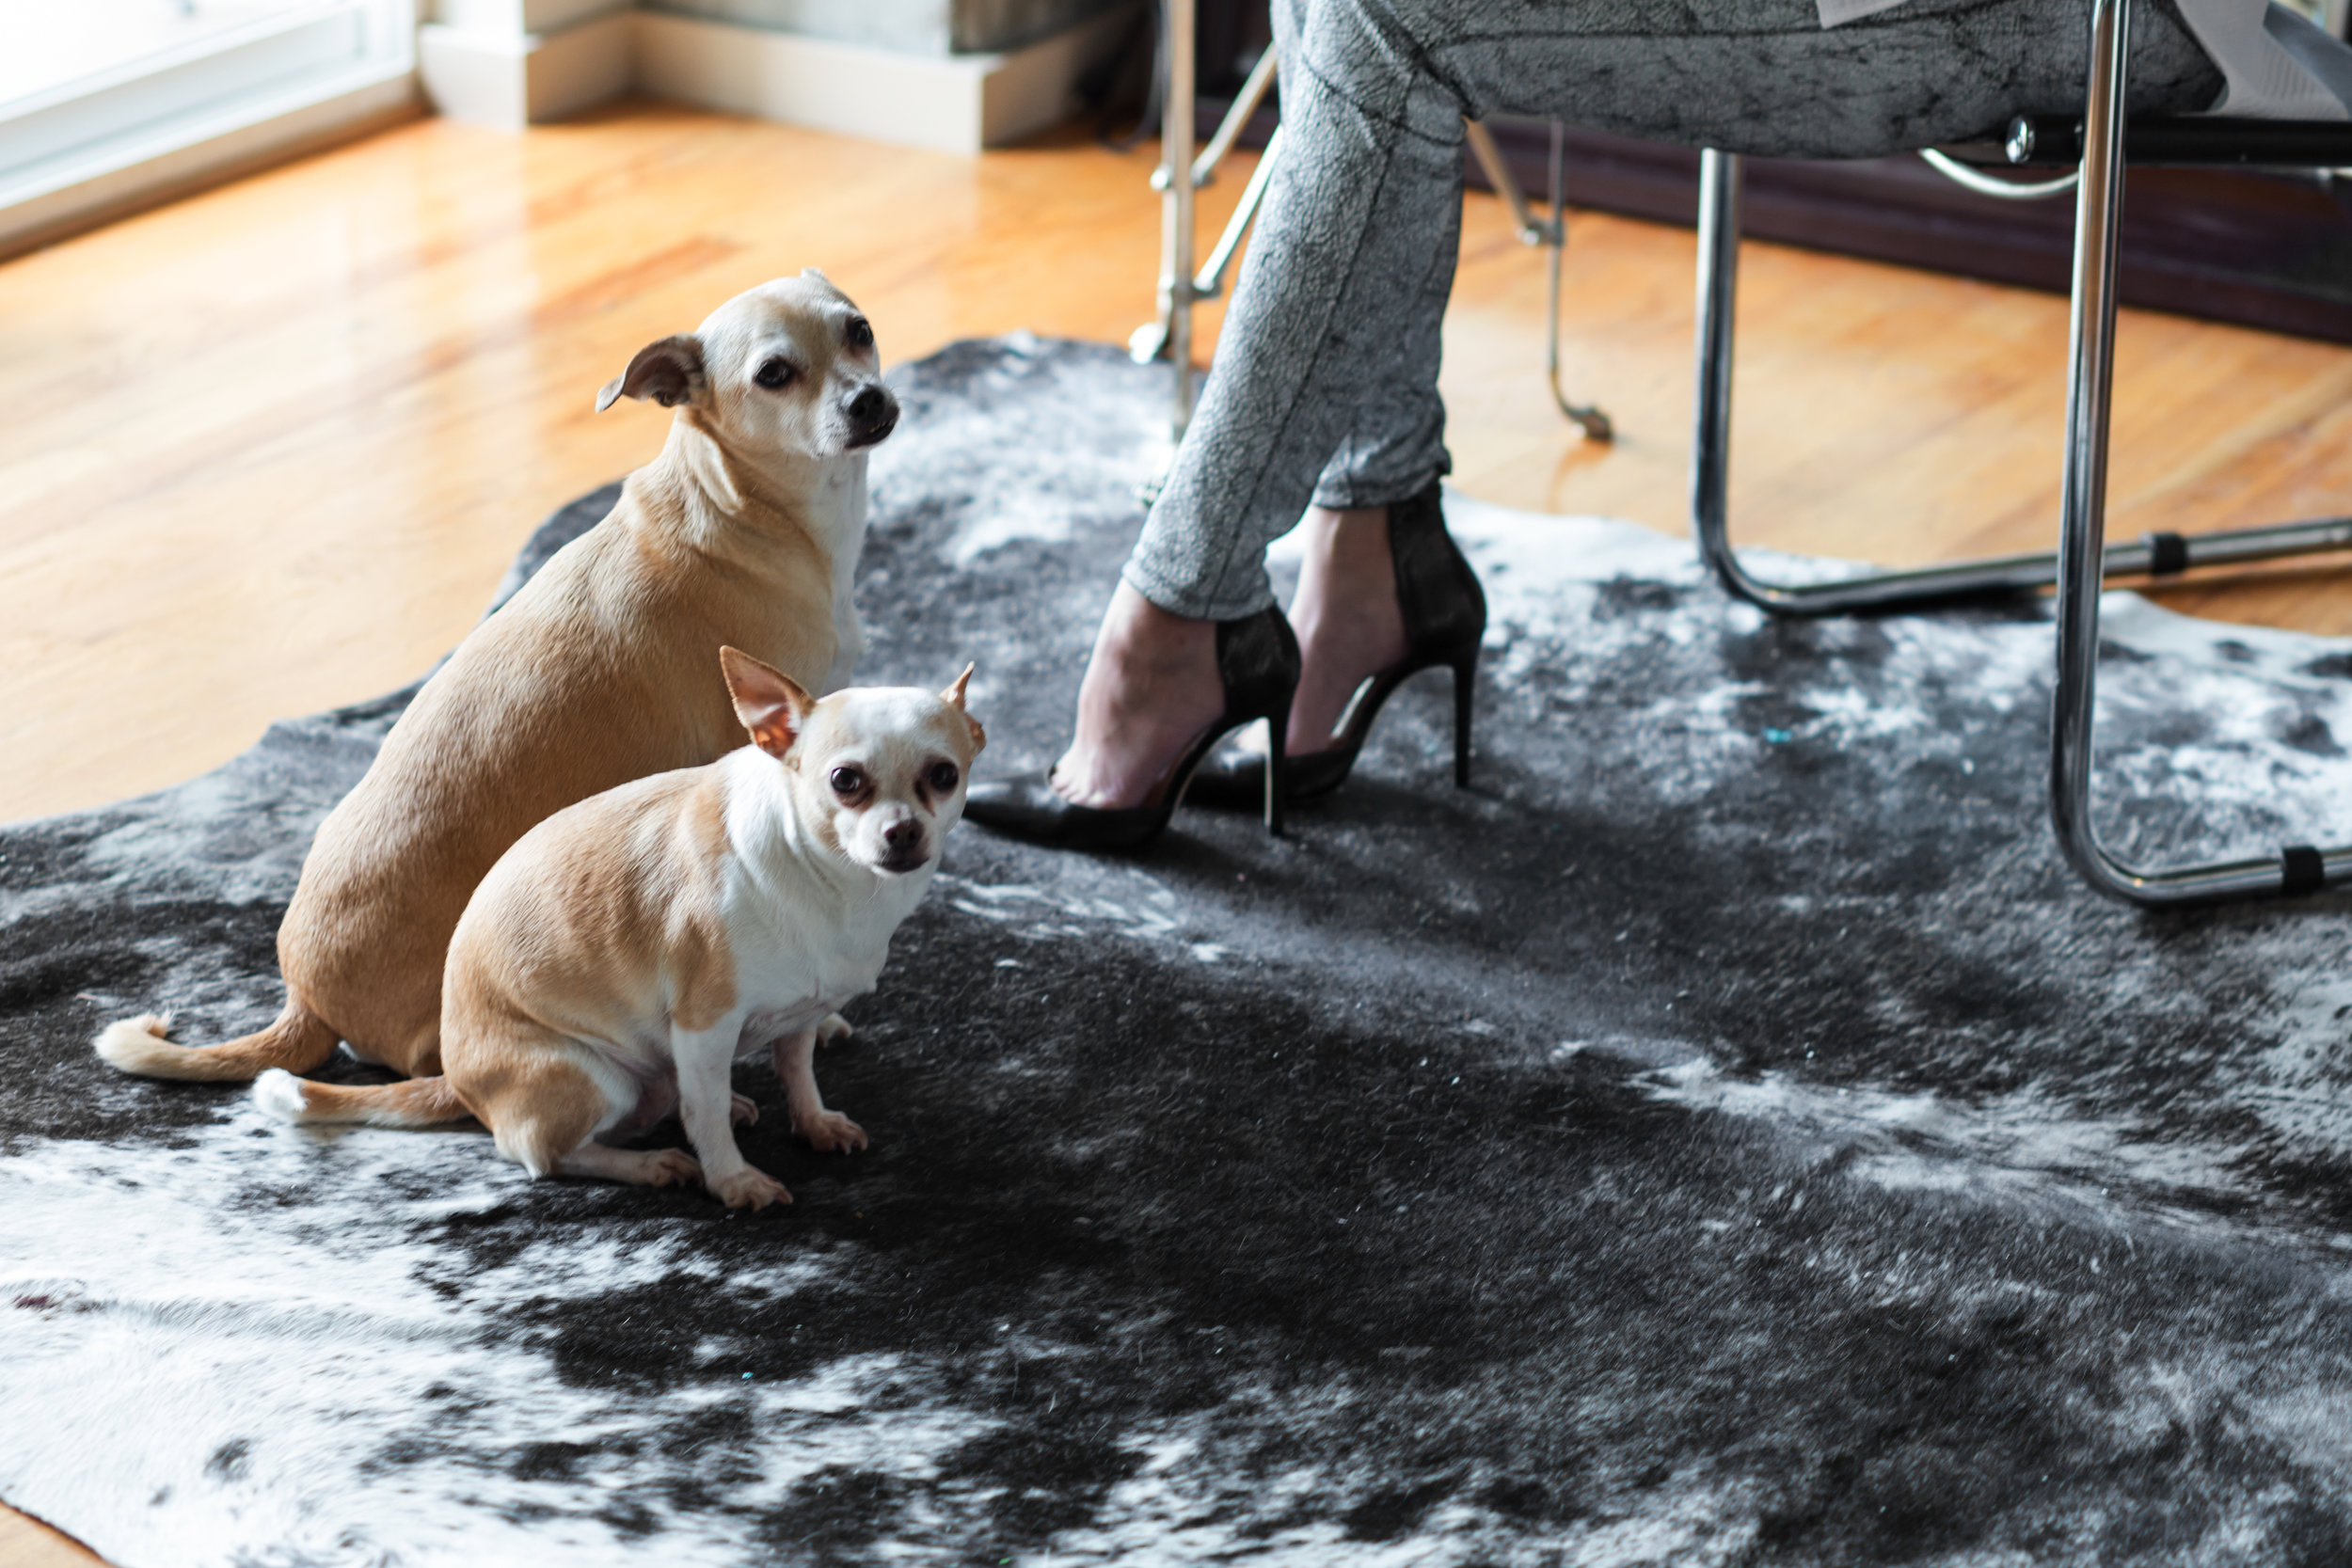 Fur babies and 'Choos Image by Sarah Ford